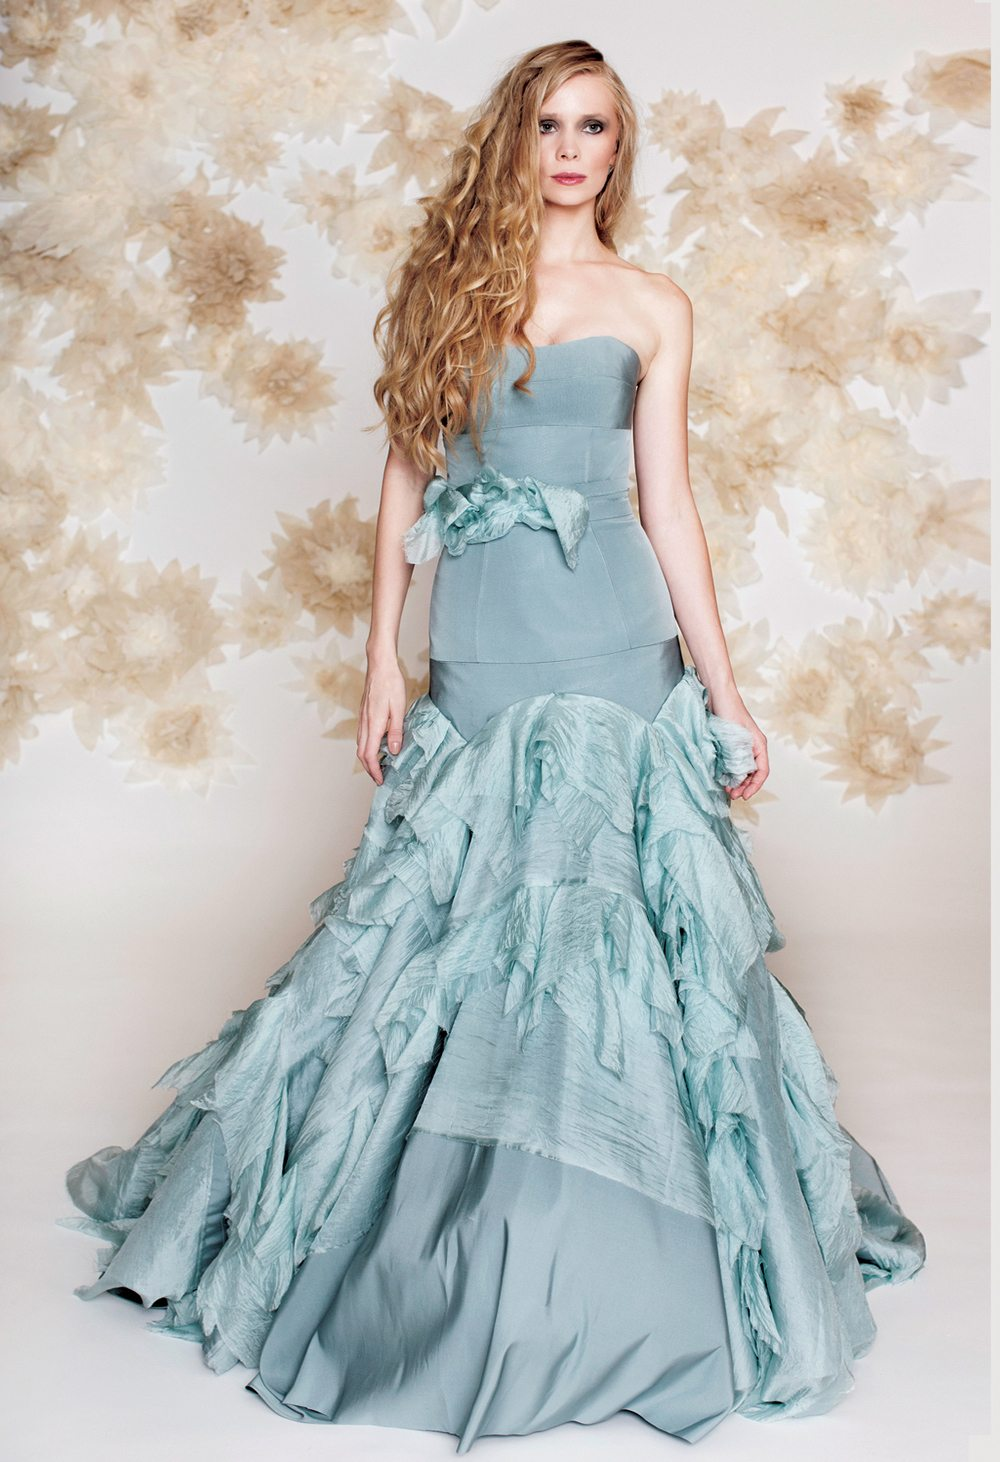 More Blue Wedding Gowns That Will Have You Re-thinking Traditional ...